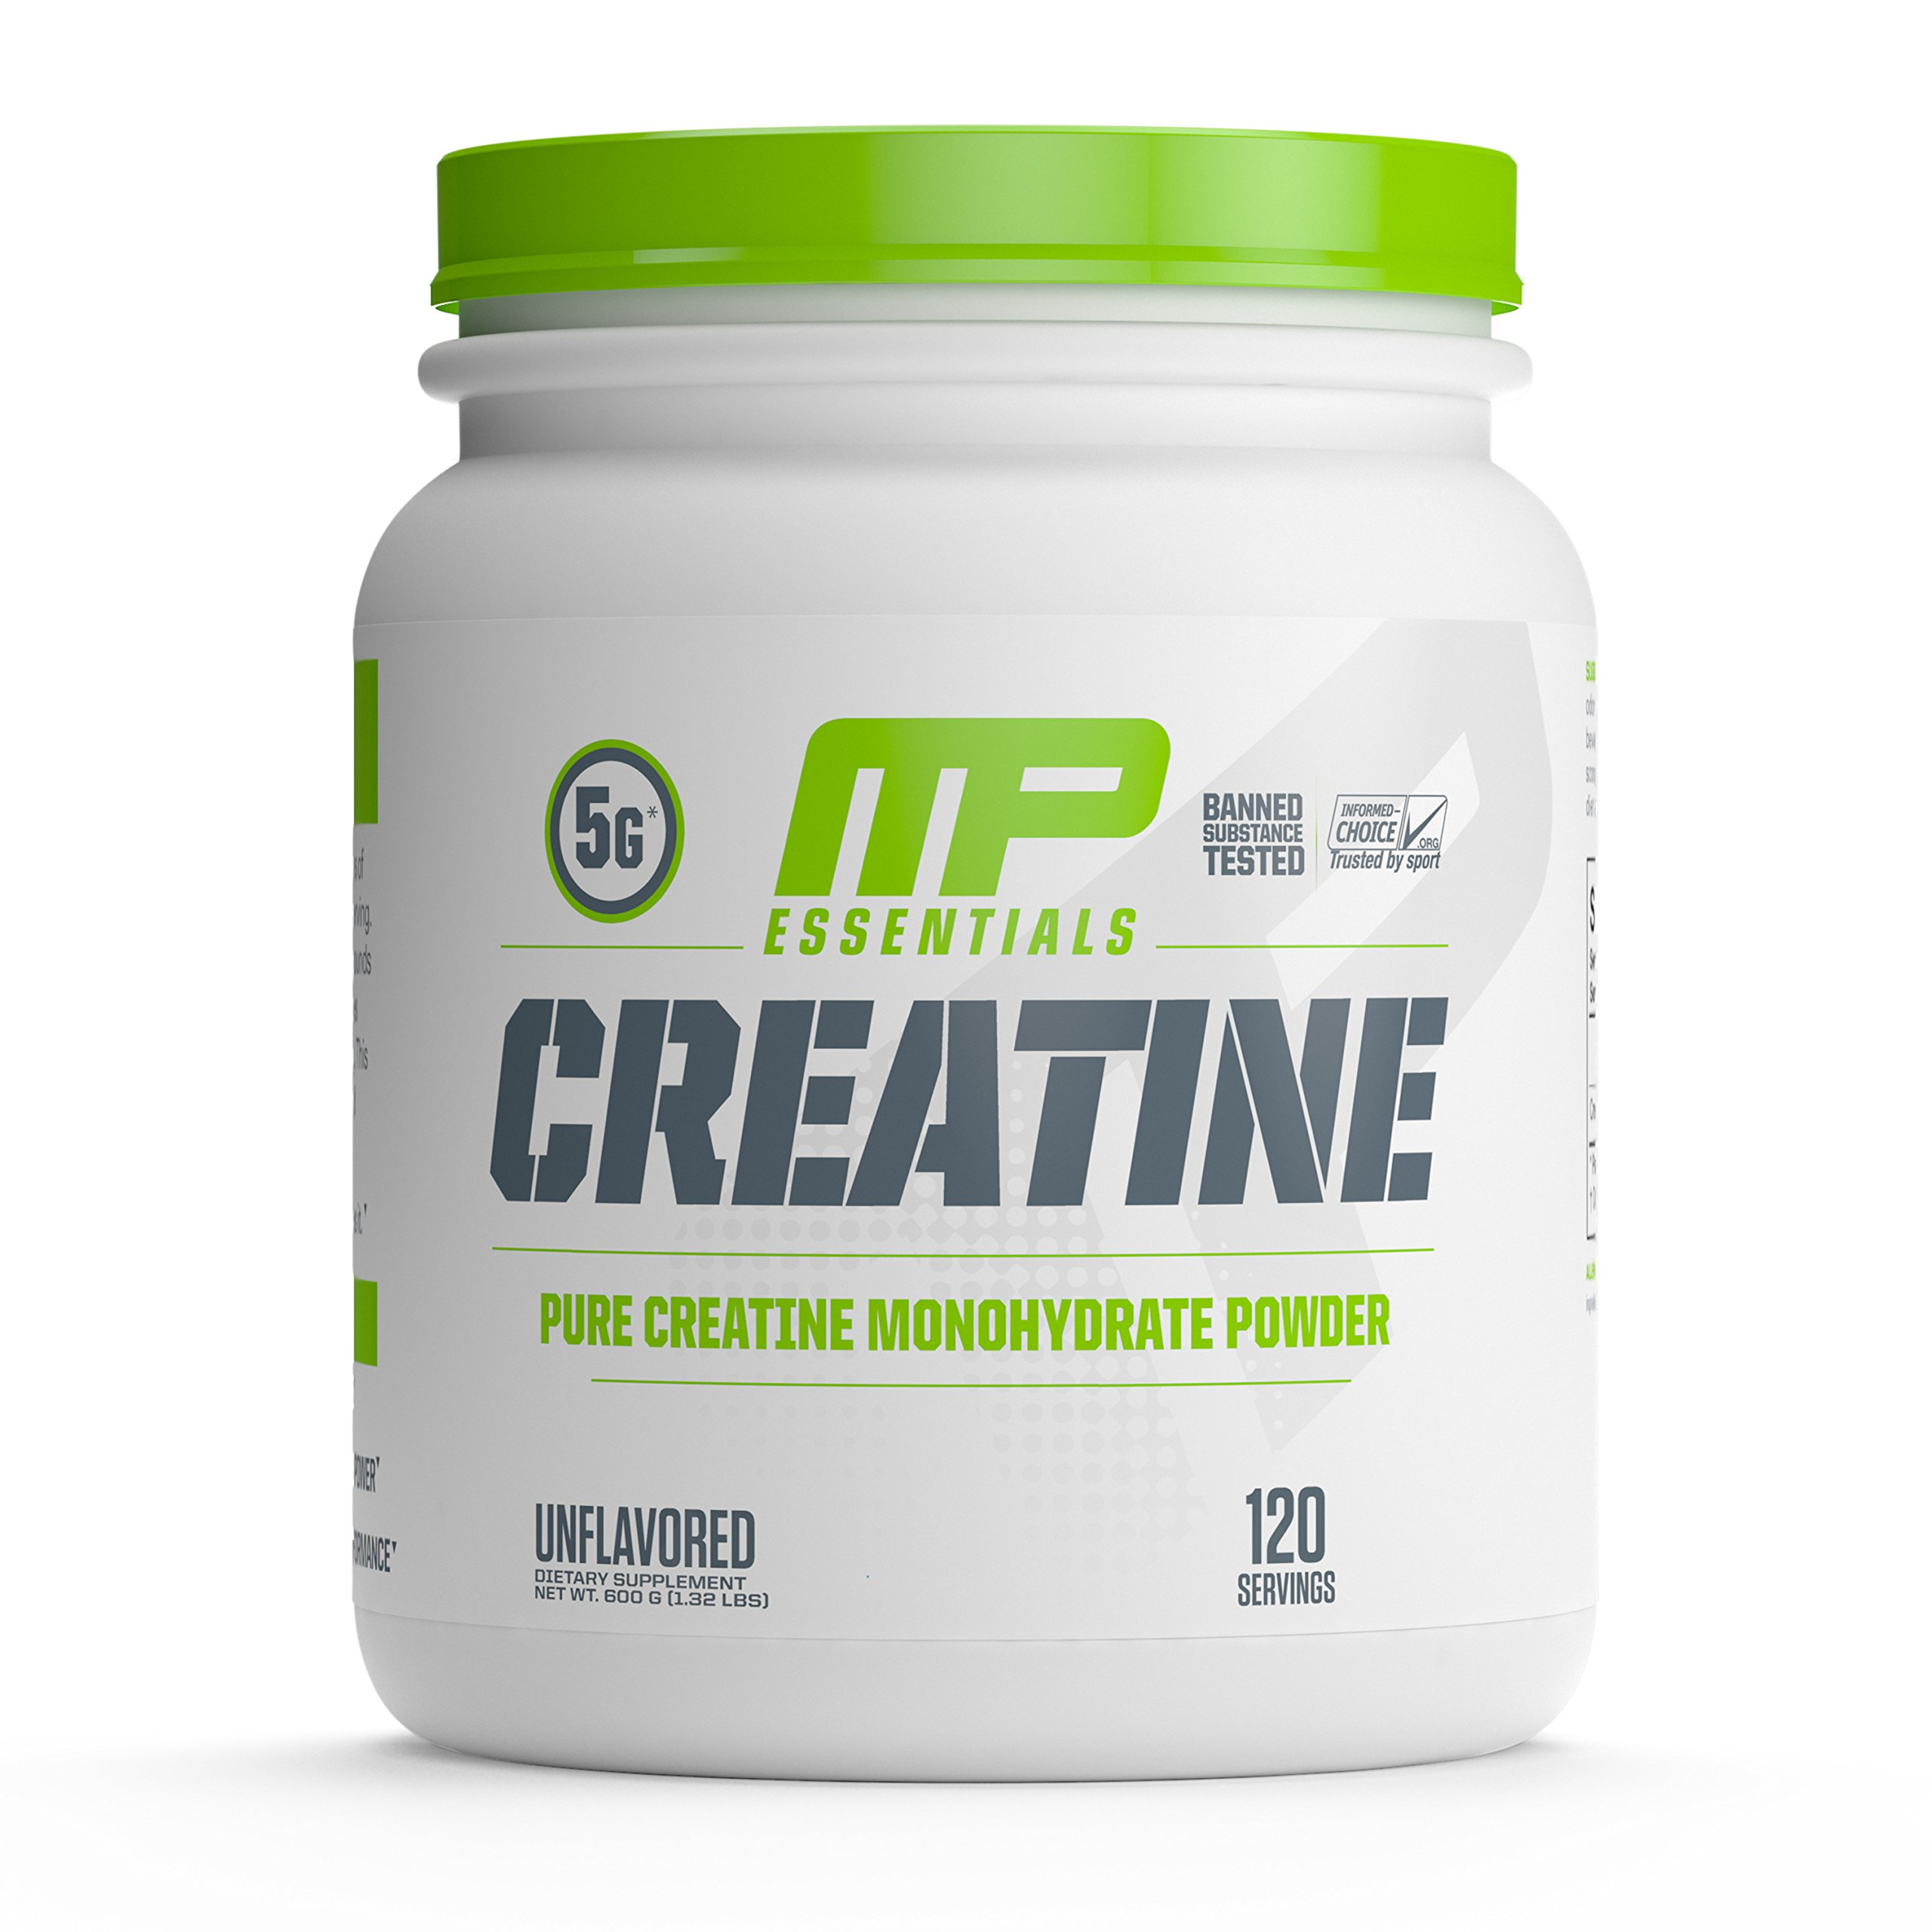 MP Essentials Micronized Creatine, Ultra-Pure 100% Creatine Monohydrate Powder, Muscle-Building, Protein Creatine Powder, Creatine Monohydrate Powder, 600 g, 120 Servings